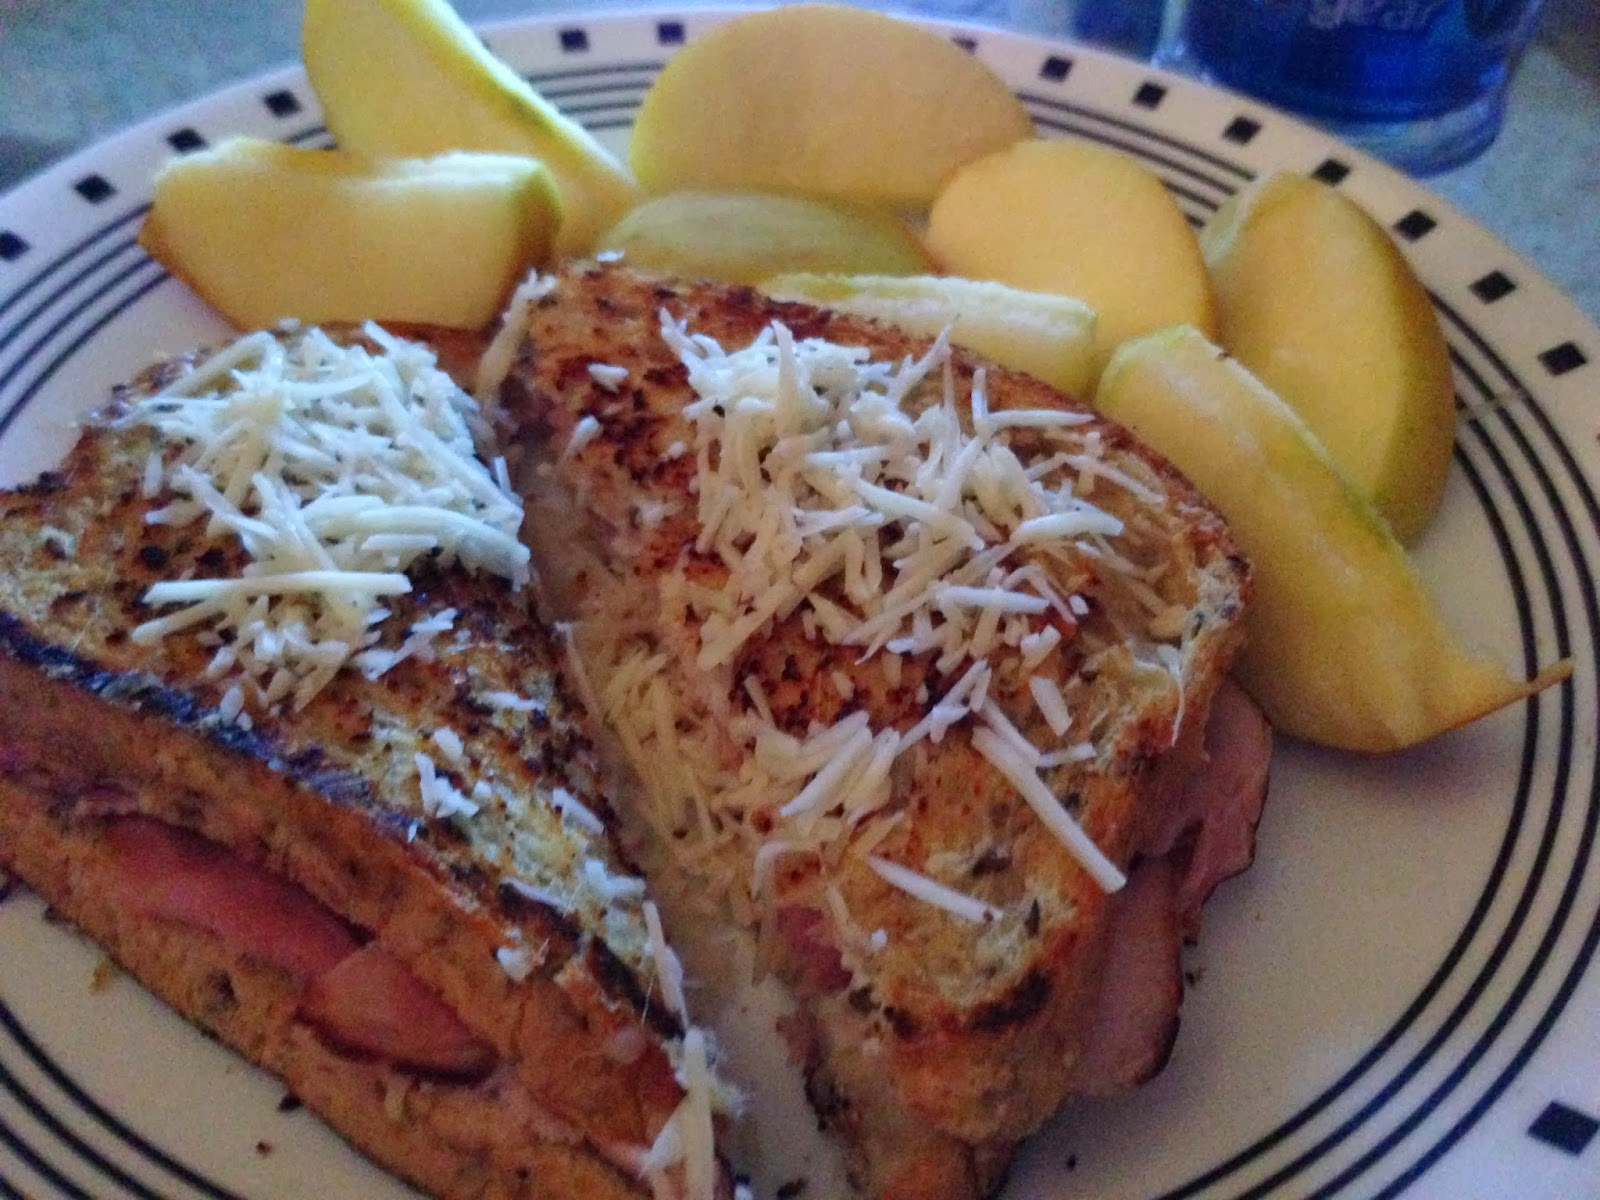 healthy girly life: French Inspired Grilled Ham and Cheese with Apple Slices